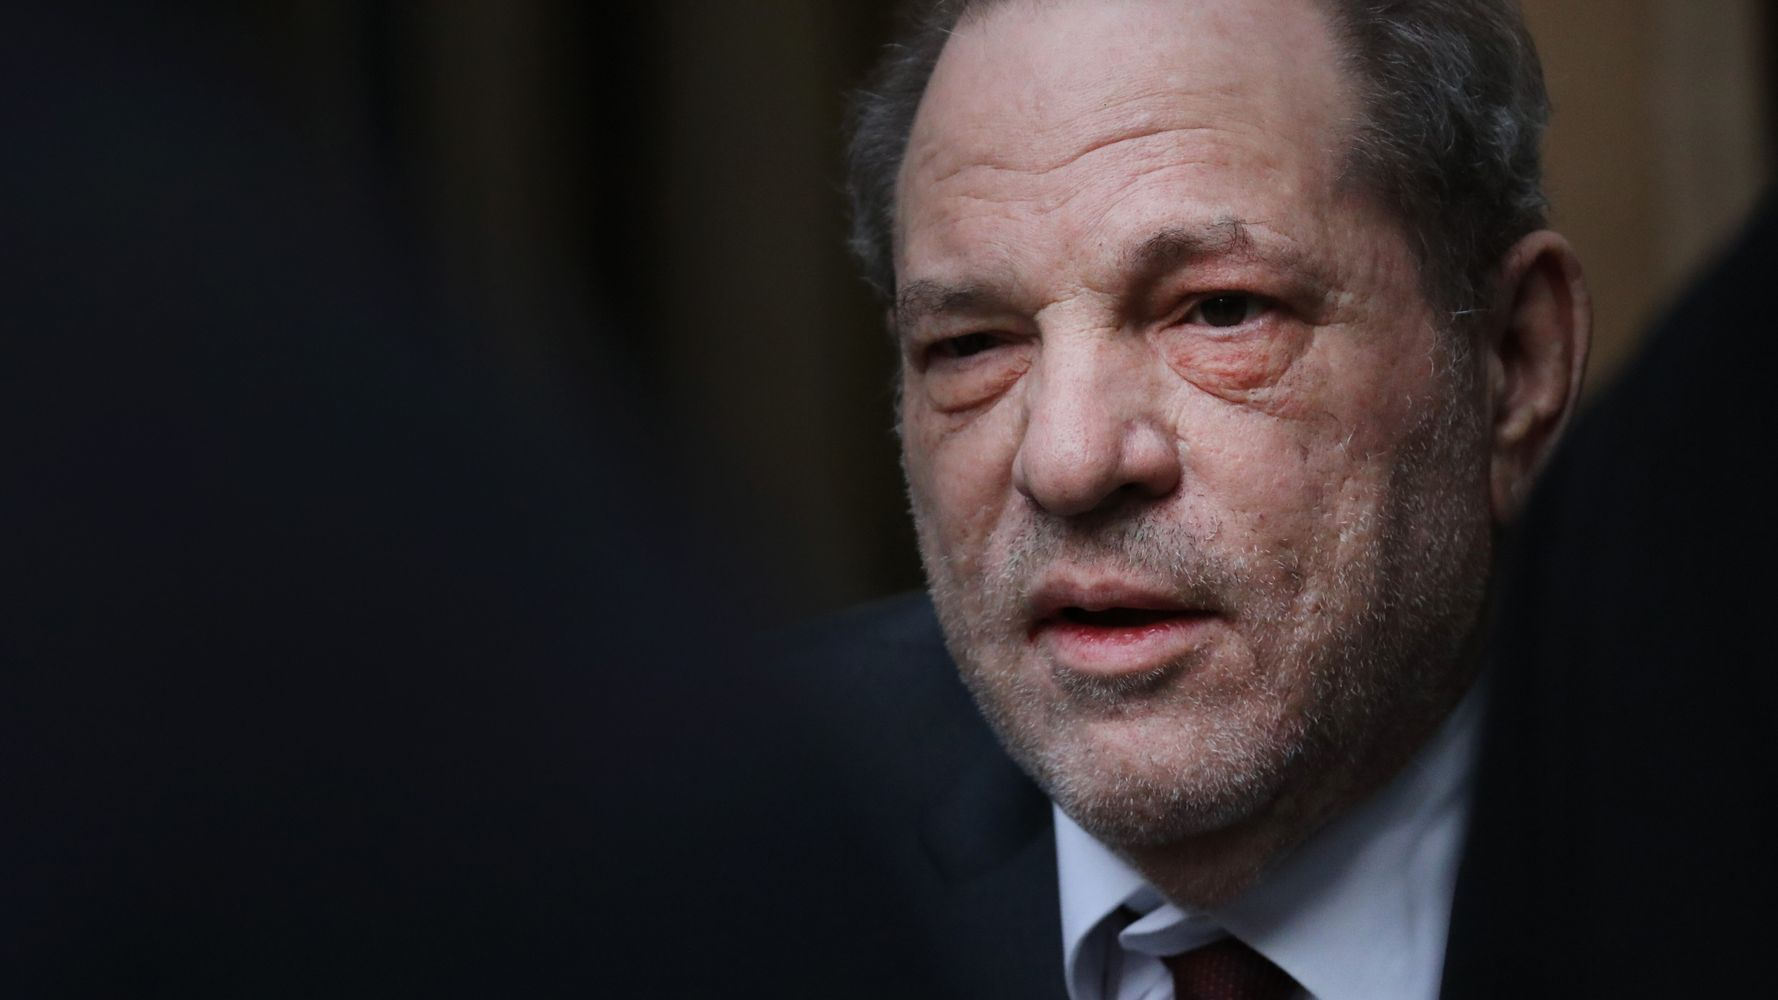 Harvey Weinstein Is A Convicted Rapist. Here's Why Those Words Matter.